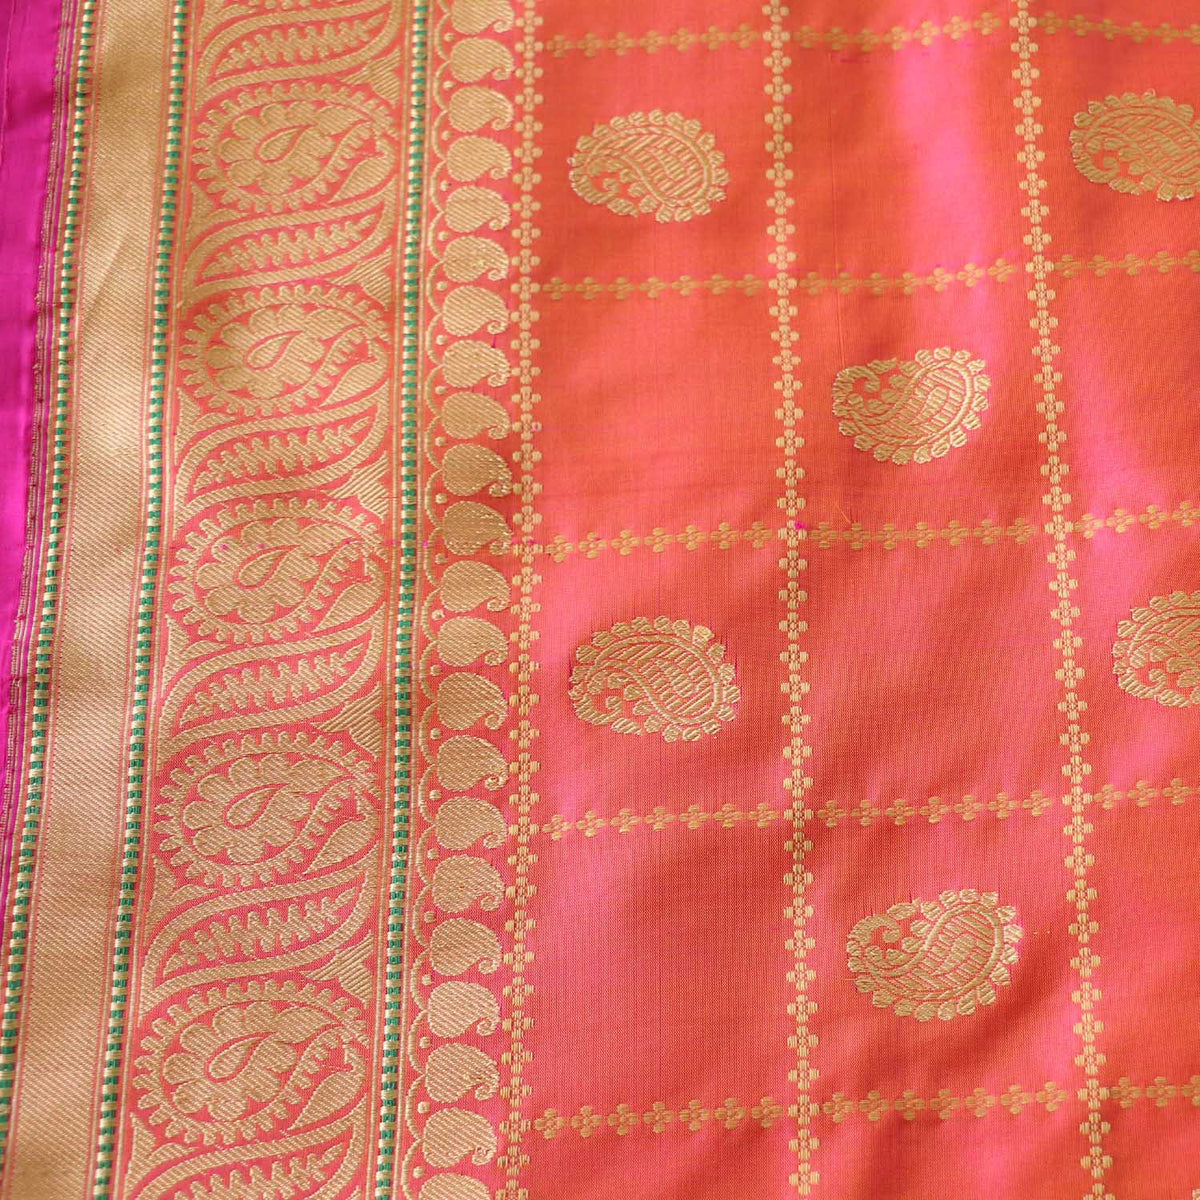 Light Orange-Indian Pink Pure Katan Silk Banarasi Handloom Saree - Tilfi - 3